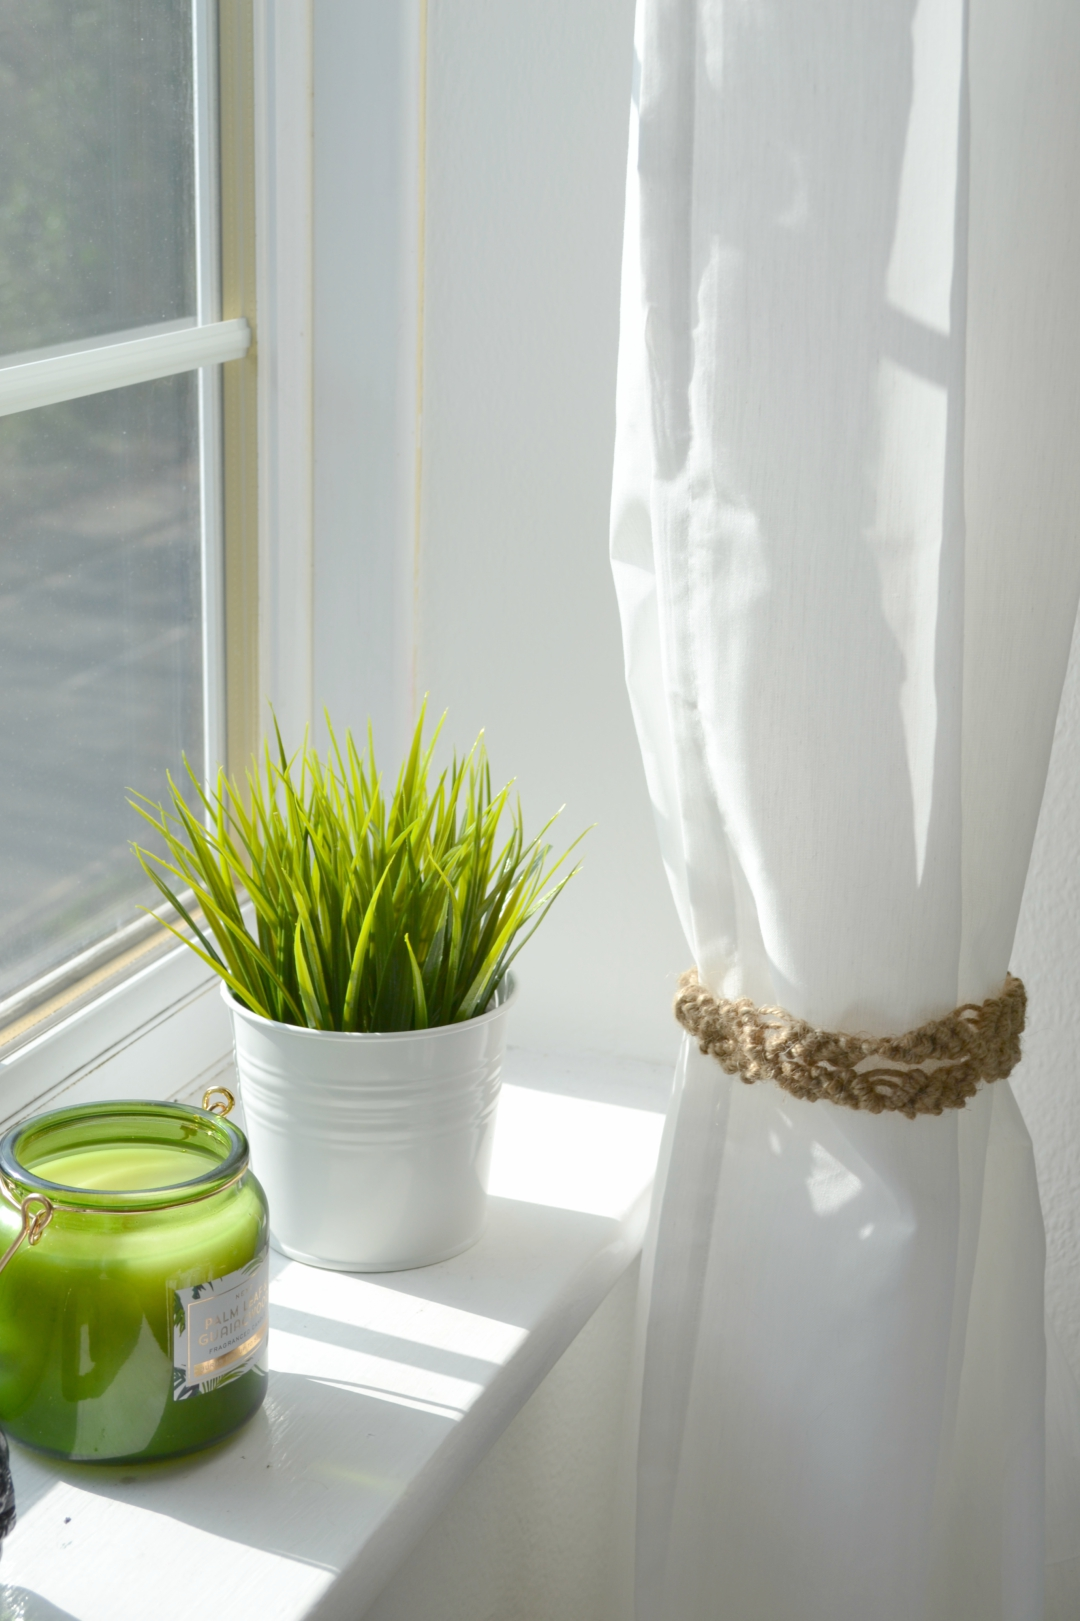 DIY Macrame Curtain Tie Backs Tutorial - Girl about townhouse